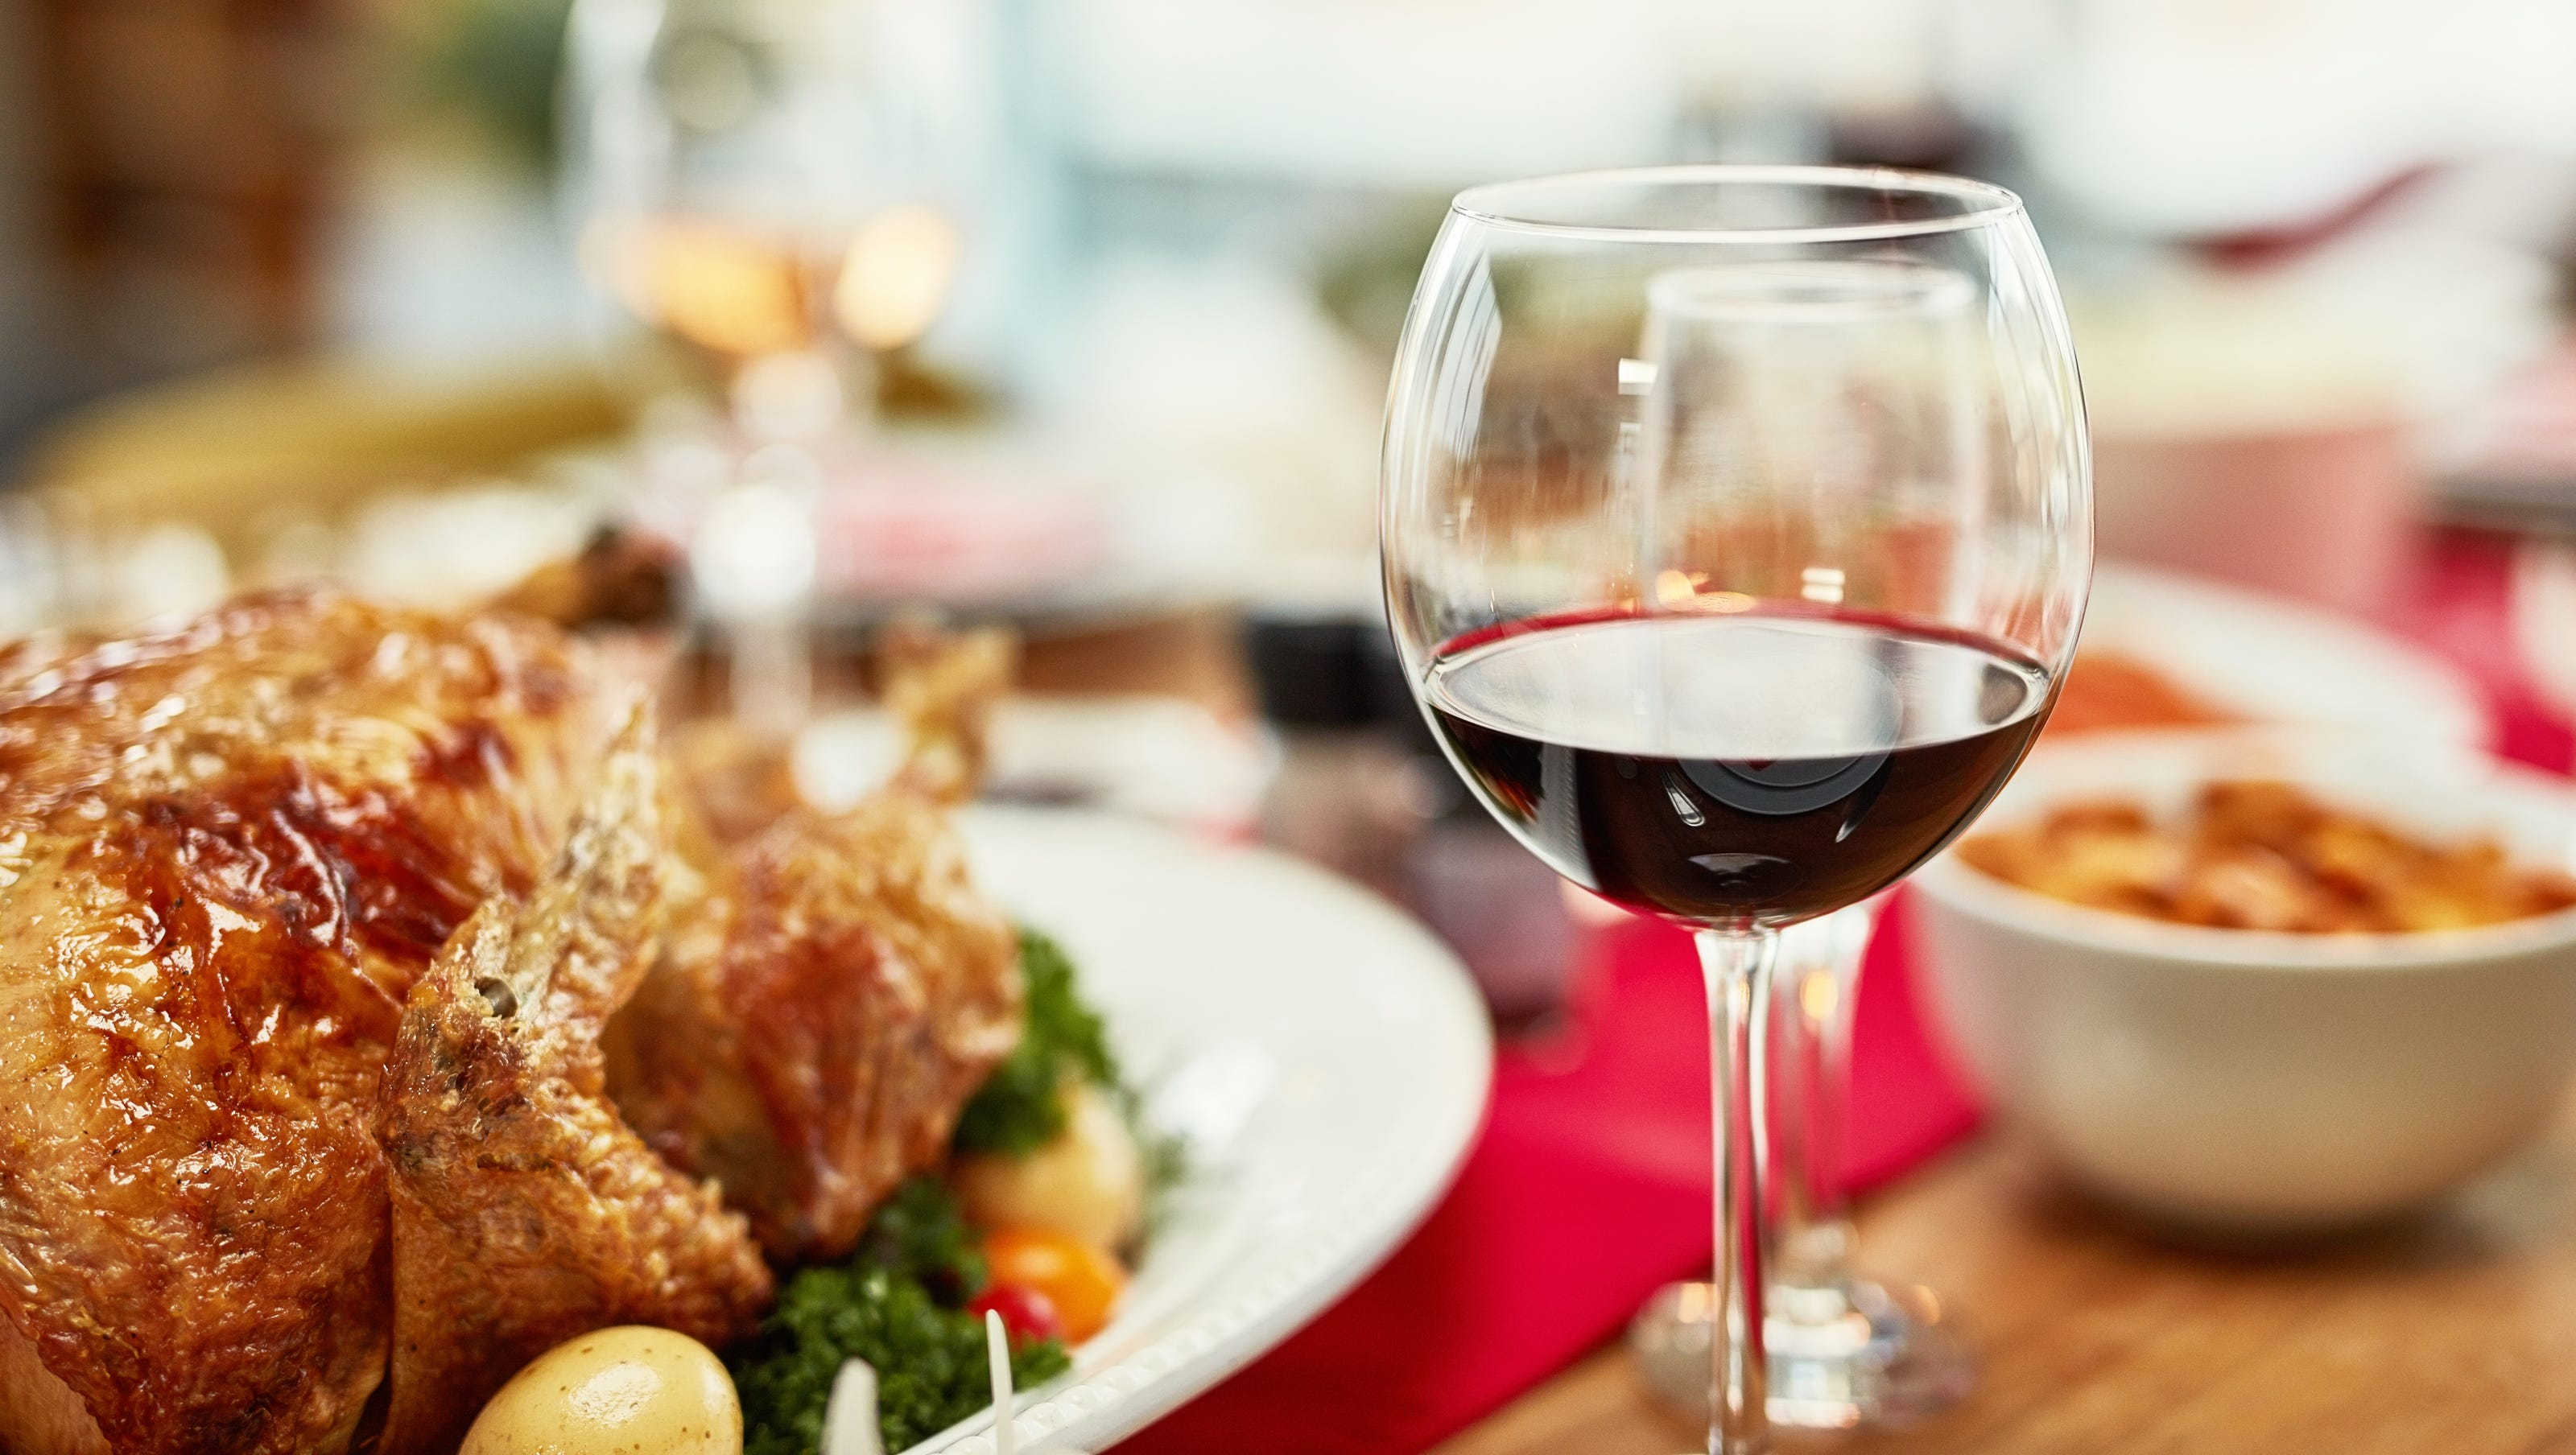 whats a good wine with turkey